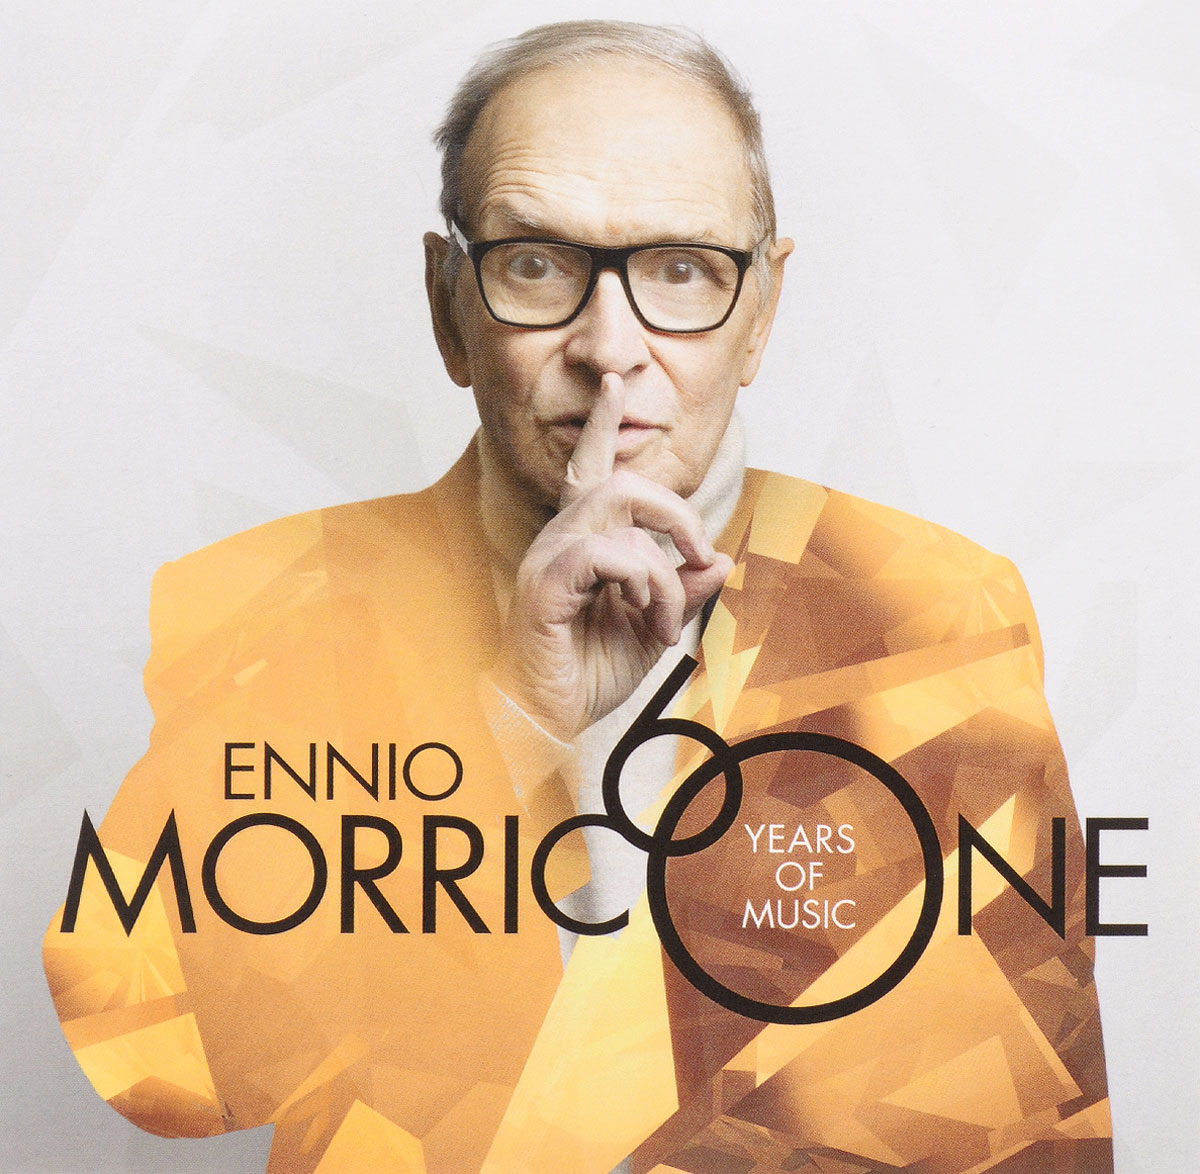 Эннио Морриконе Ennio Morricone. Morricone 60 Years Of Music (CD + DVD)